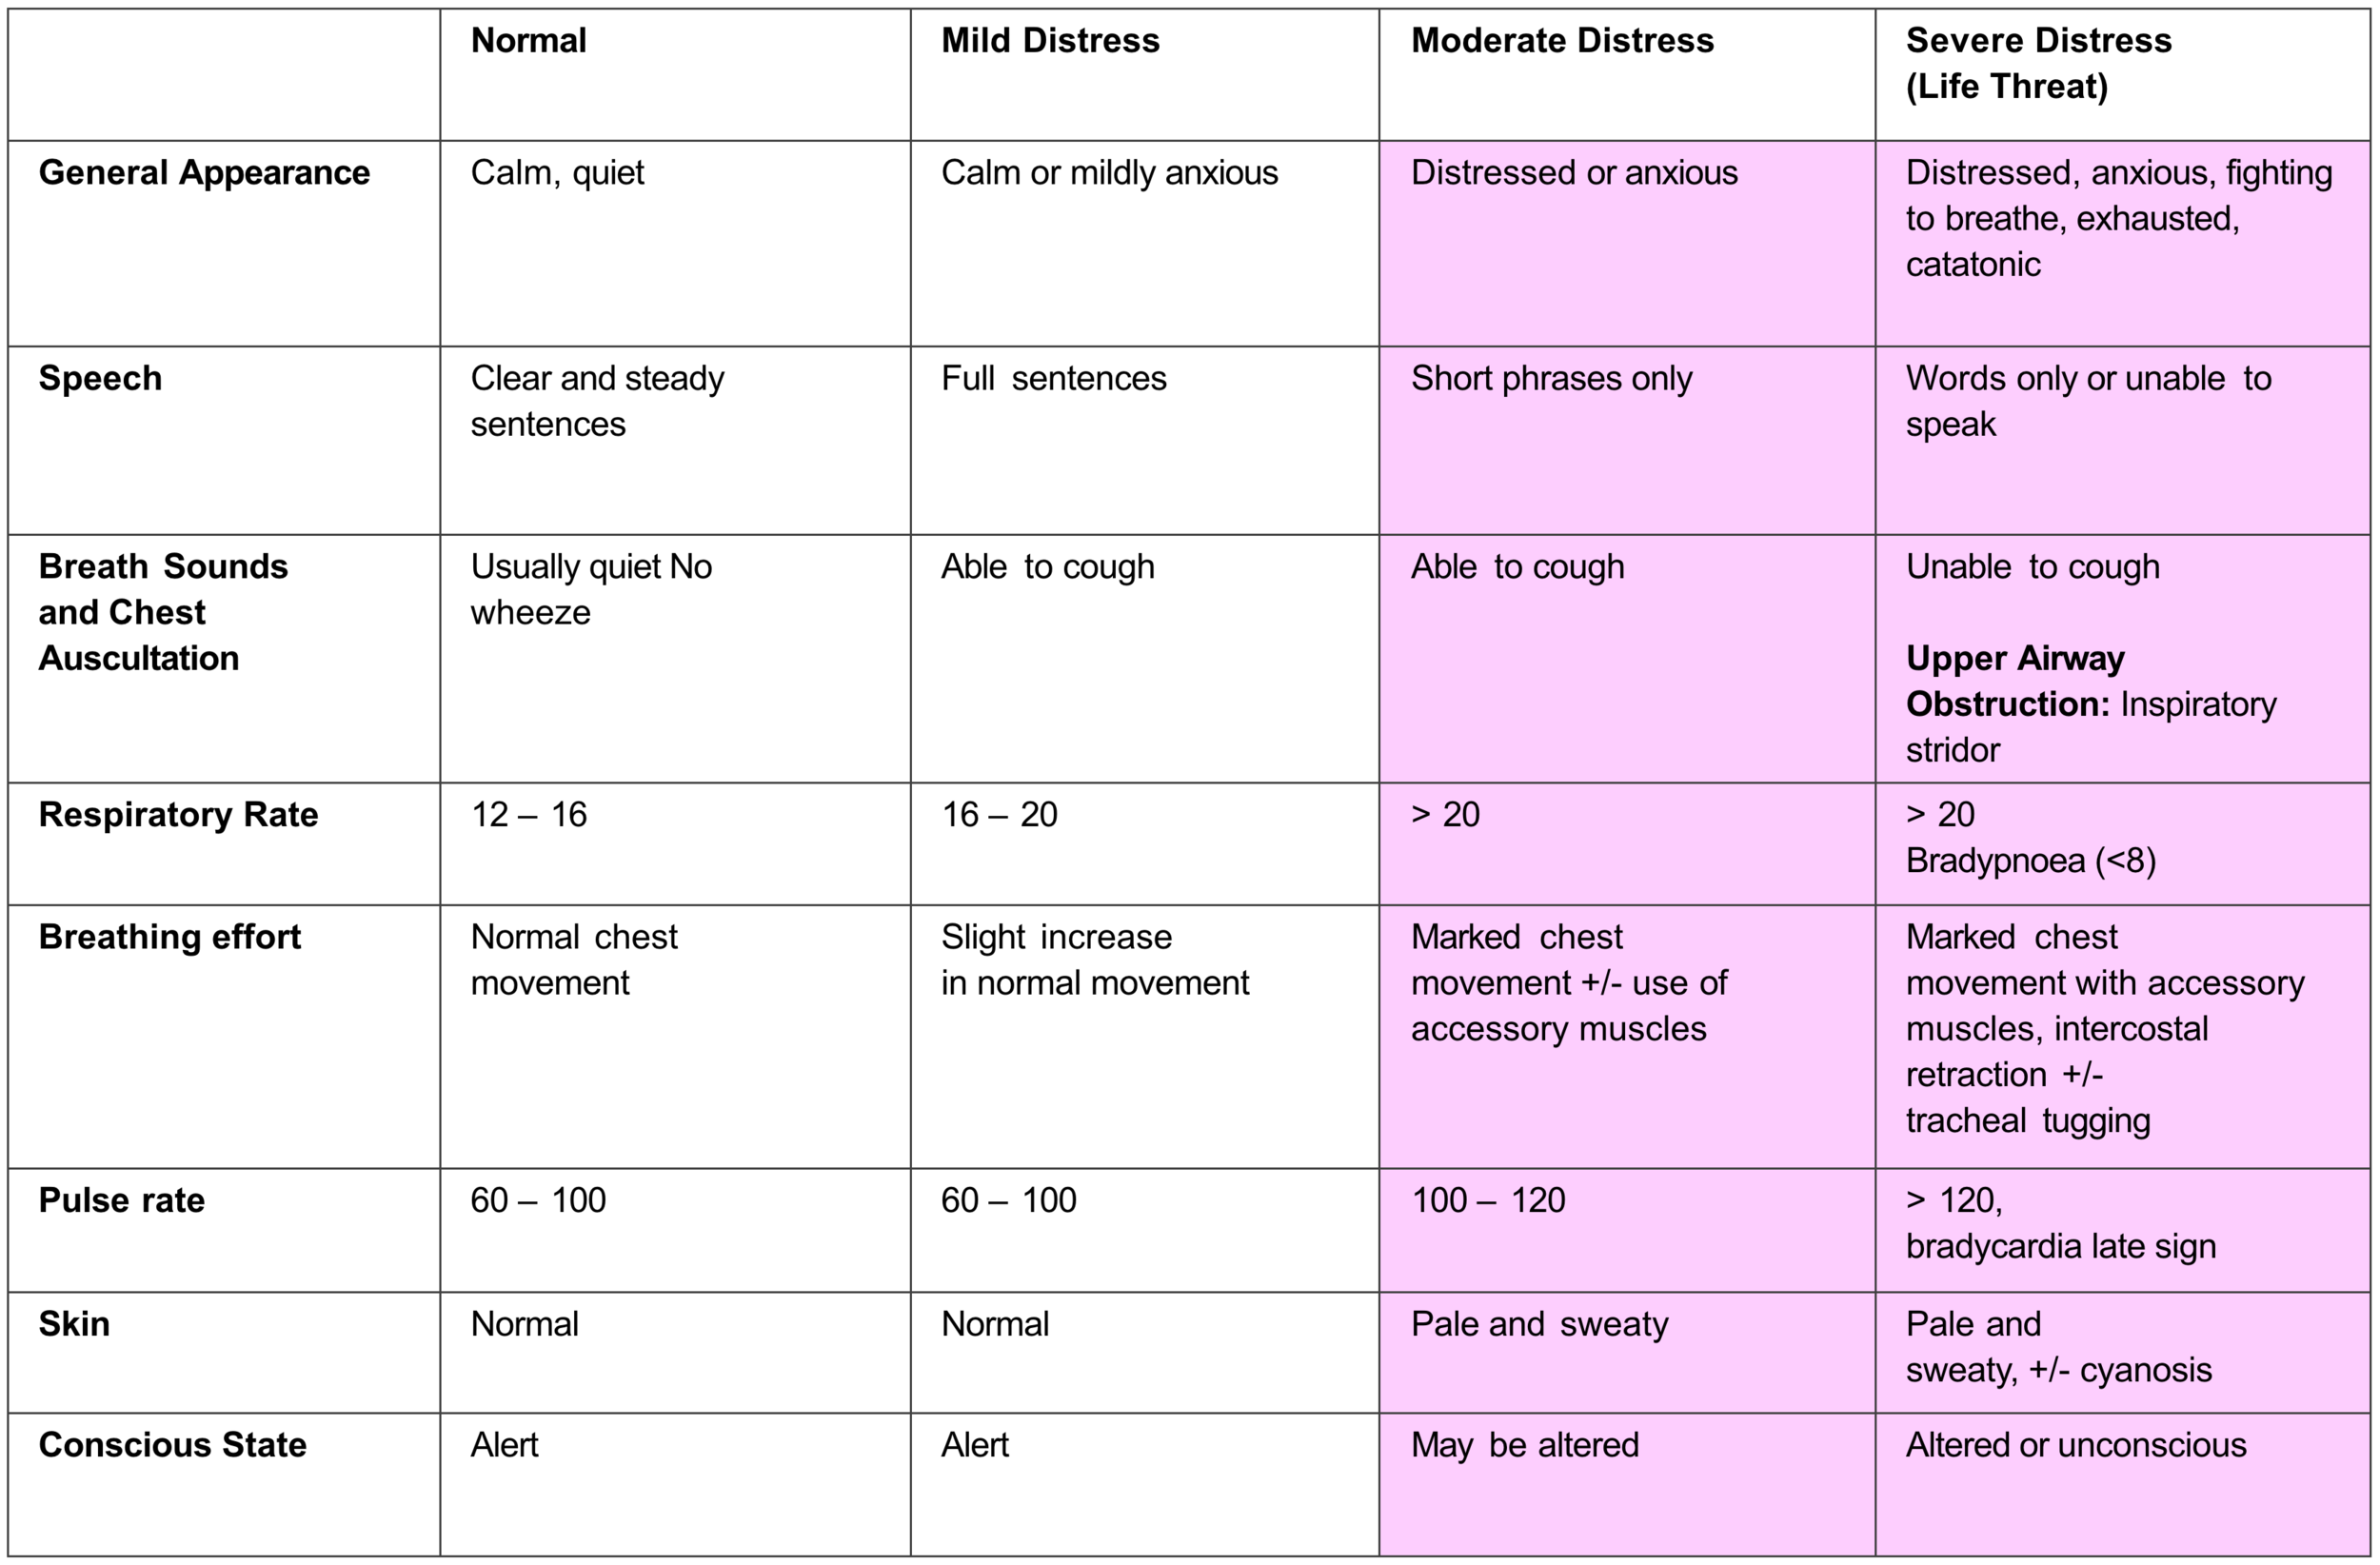 Table 1. Respiratory Status Assessment (modified from Clinical Practice Guidelines, Ambulance Victoria)